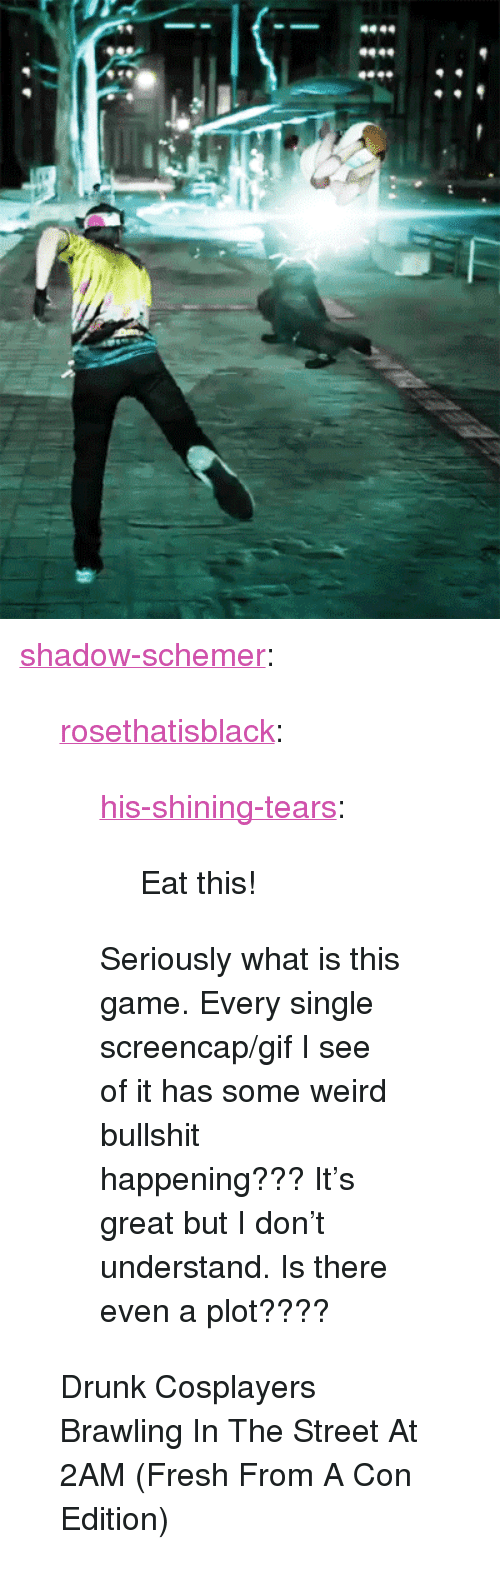 "Drunk, Fresh, and Gif: <p><a href=""http://shadow-schemer.tumblr.com/post/158111000252/rosethatisblack-his-shining-tears-eat-this"" class=""tumblr_blog"">shadow-schemer</a>:</p><blockquote> <p><a href=""http://rosethatisblack.tumblr.com/post/158101585353/his-shining-tears-eat-this-seriously-what-is"" class=""tumblr_blog"">rosethatisblack</a>:</p> <blockquote> <p><a href=""http://his-shining-tears.tumblr.com/post/158098090555/eat-this"" class=""tumblr_blog"">his-shining-tears</a>:</p> <blockquote><p>Eat this!</p></blockquote> <p>Seriously what is this game. Every single screencap/gif I see of it has some weird bullshit happening??? It's great but I don't understand. Is there even a plot???? <br/></p> </blockquote> <p>Drunk Cosplayers Brawling In The Street At 2AM (Fresh From A Con Edition)<br/></p> </blockquote>"